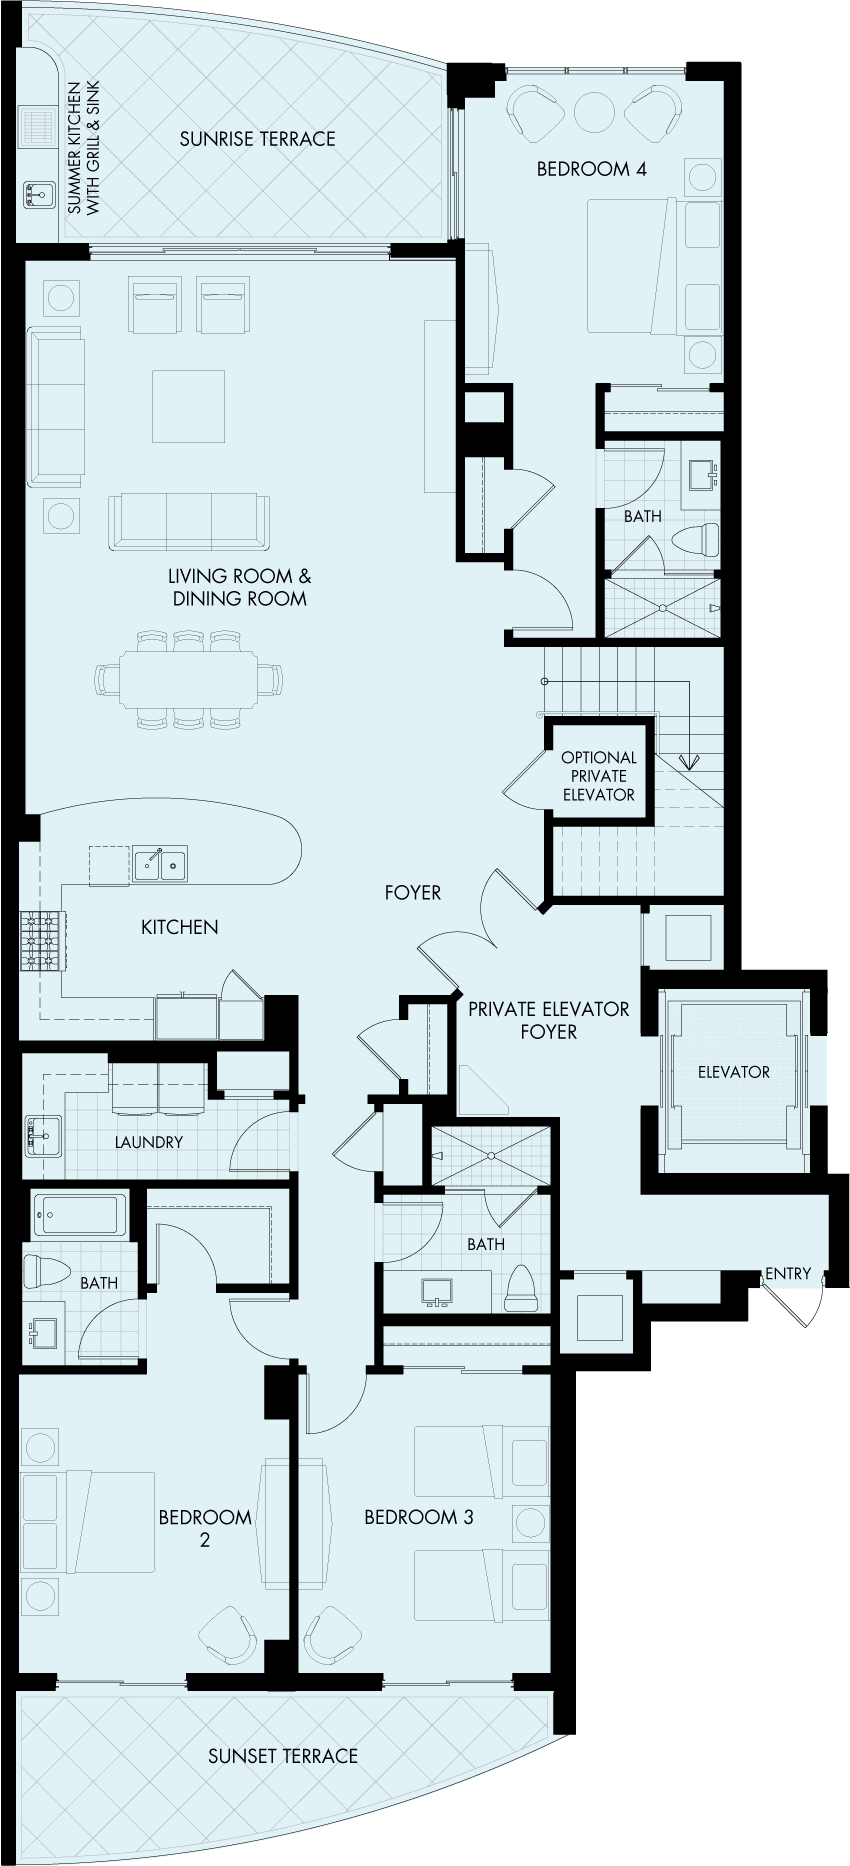 St Kitts Charleston Penthouse floorplan Gulf front condo